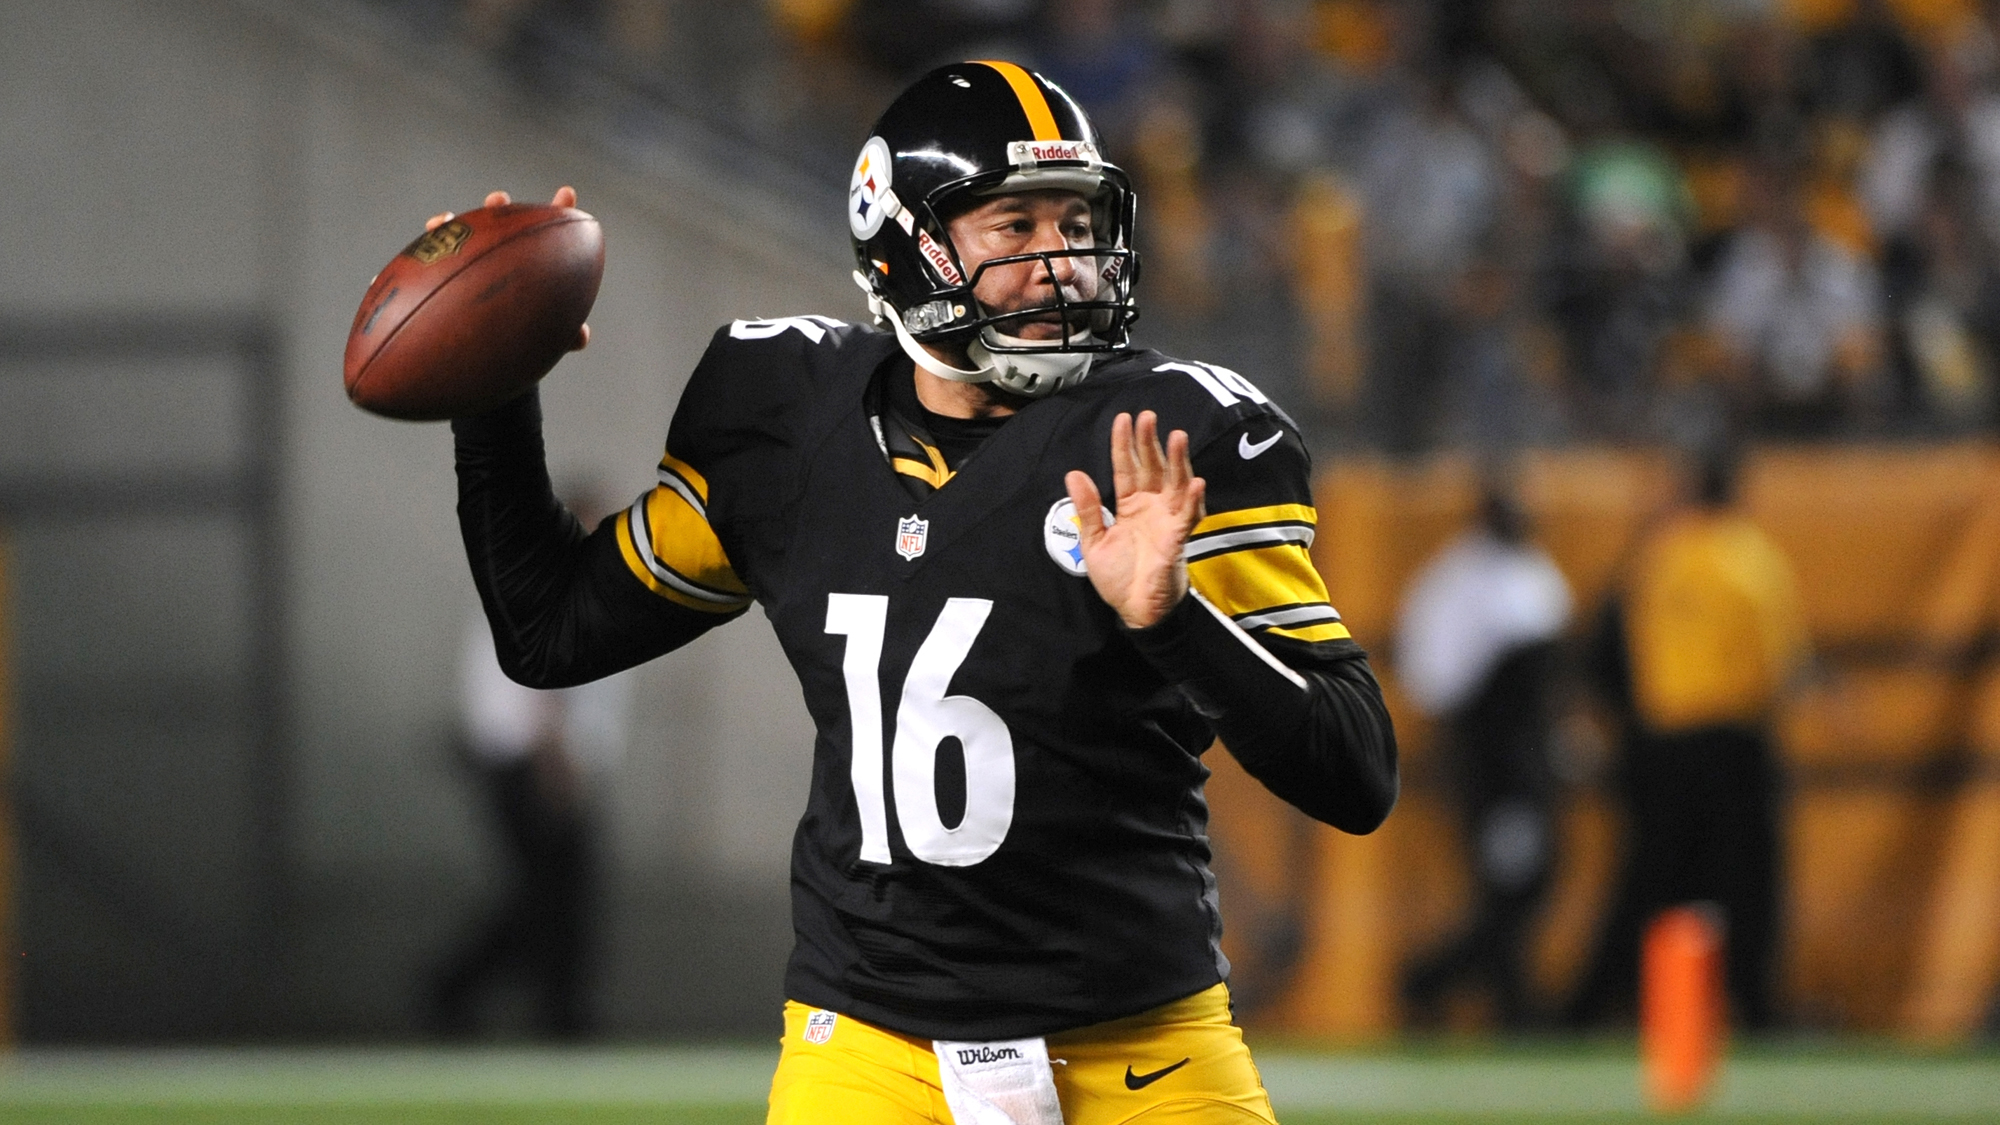 Charlie Batch executed the perfect backup plan